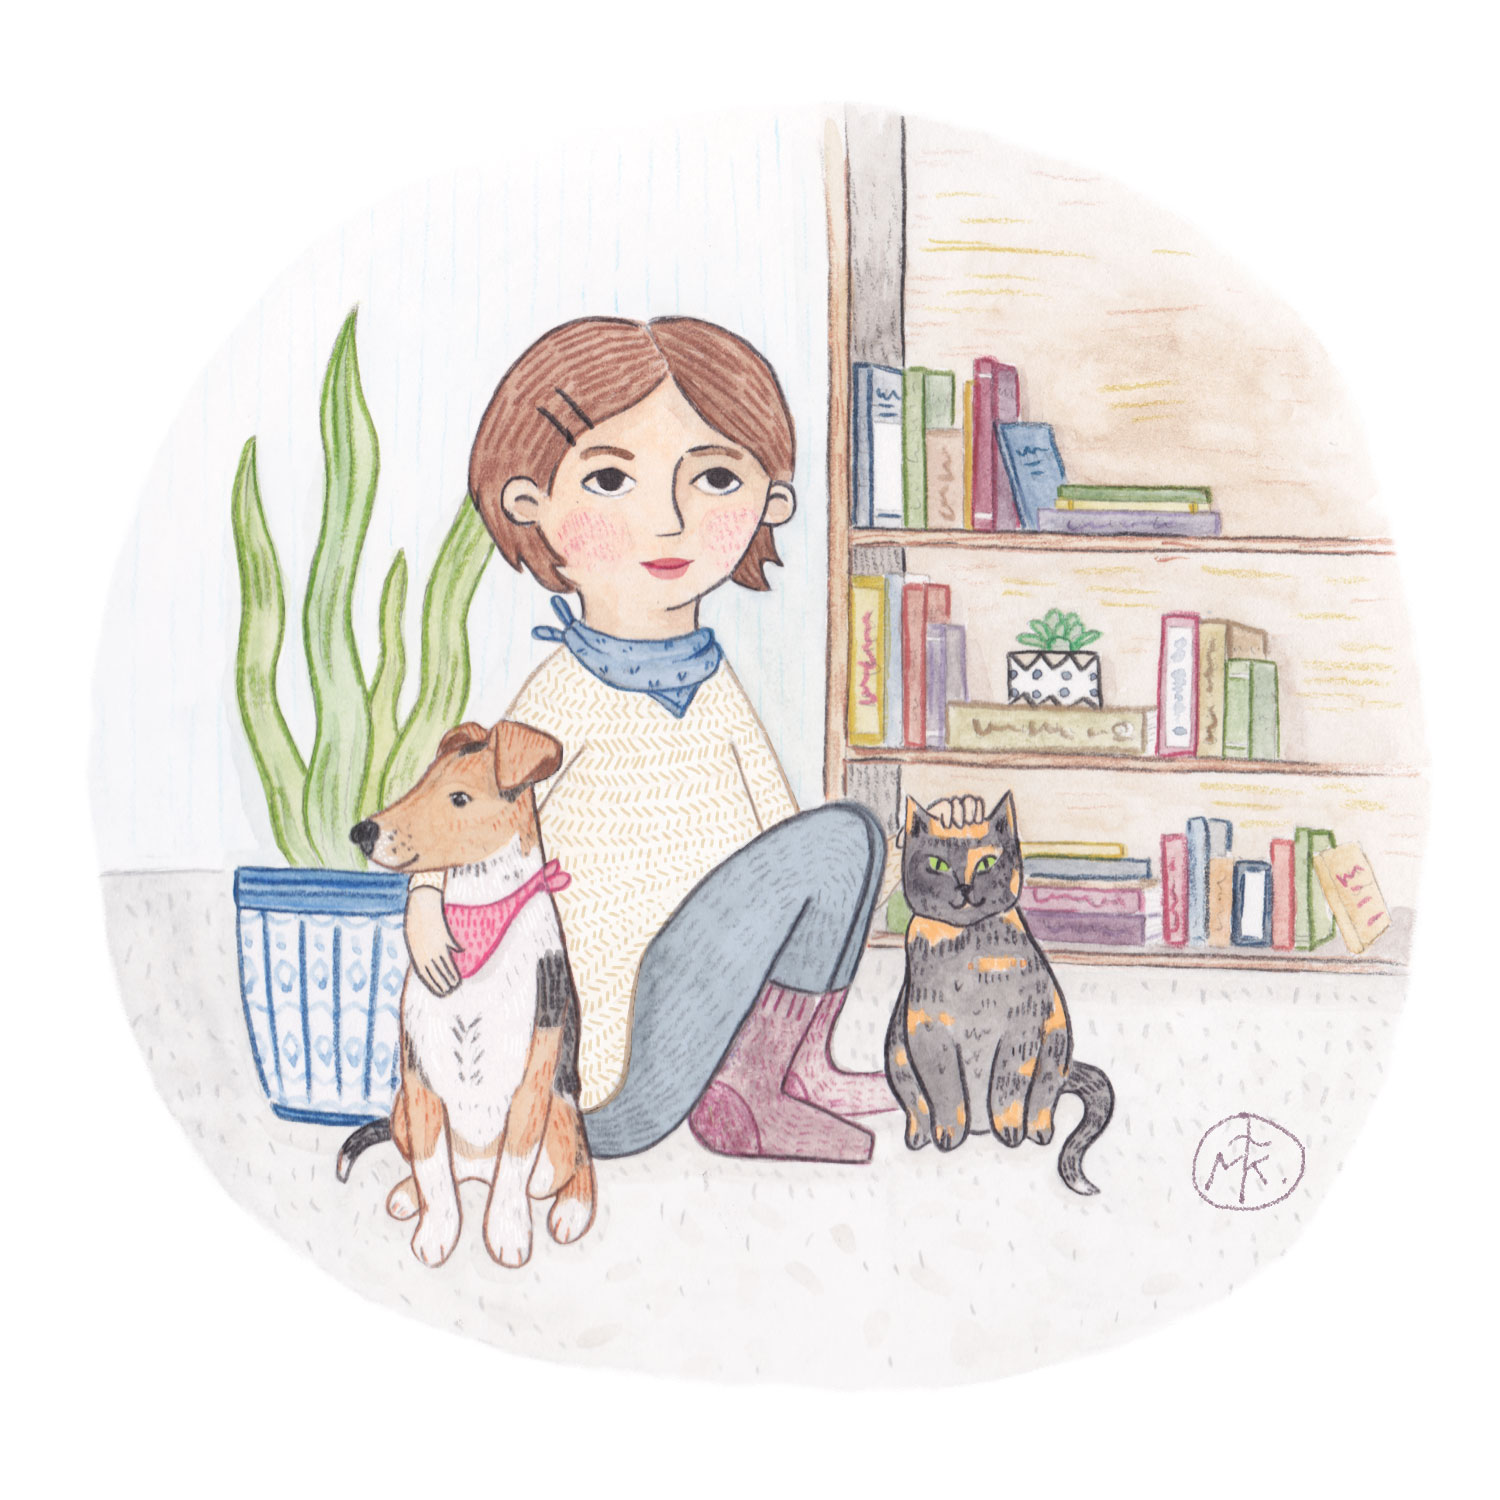 An updated self portrait for my site — had to make a new one with my shorter hair!